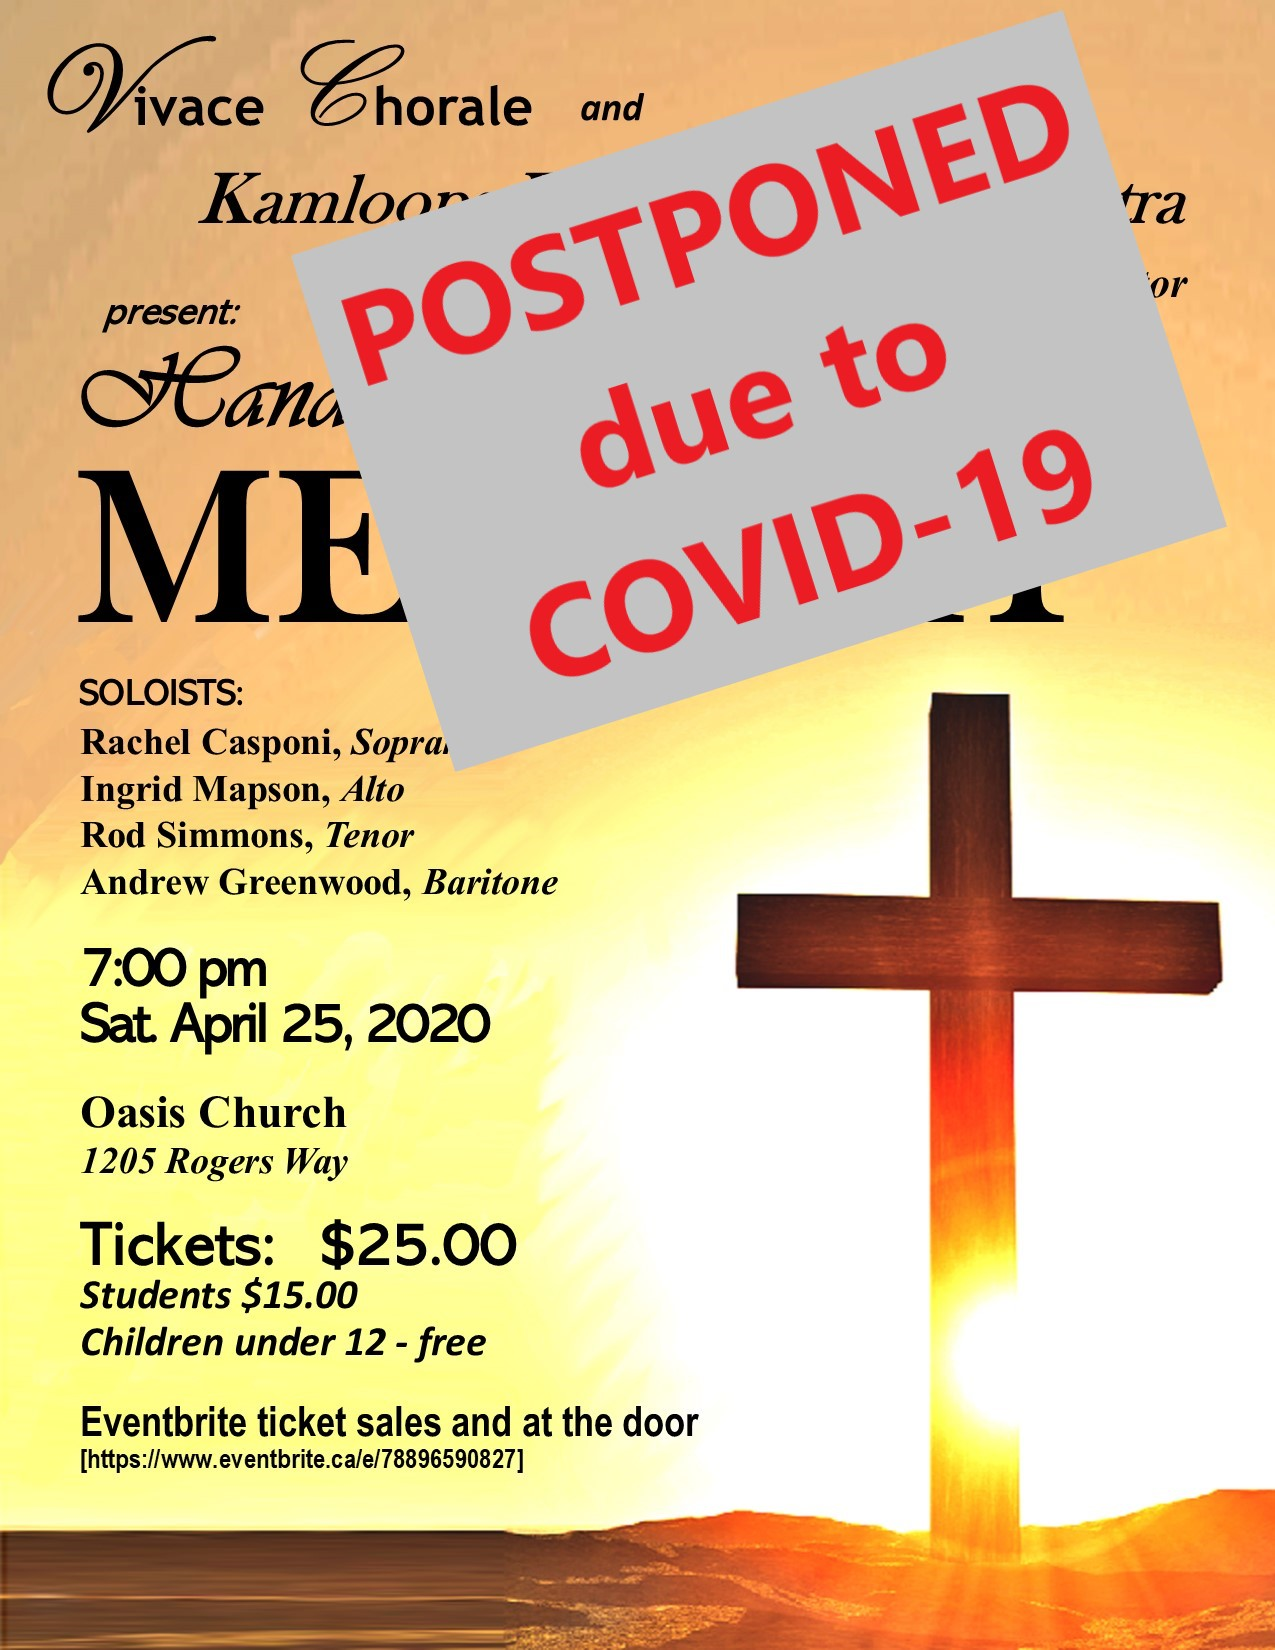 Messiah postponed due to COVID-19